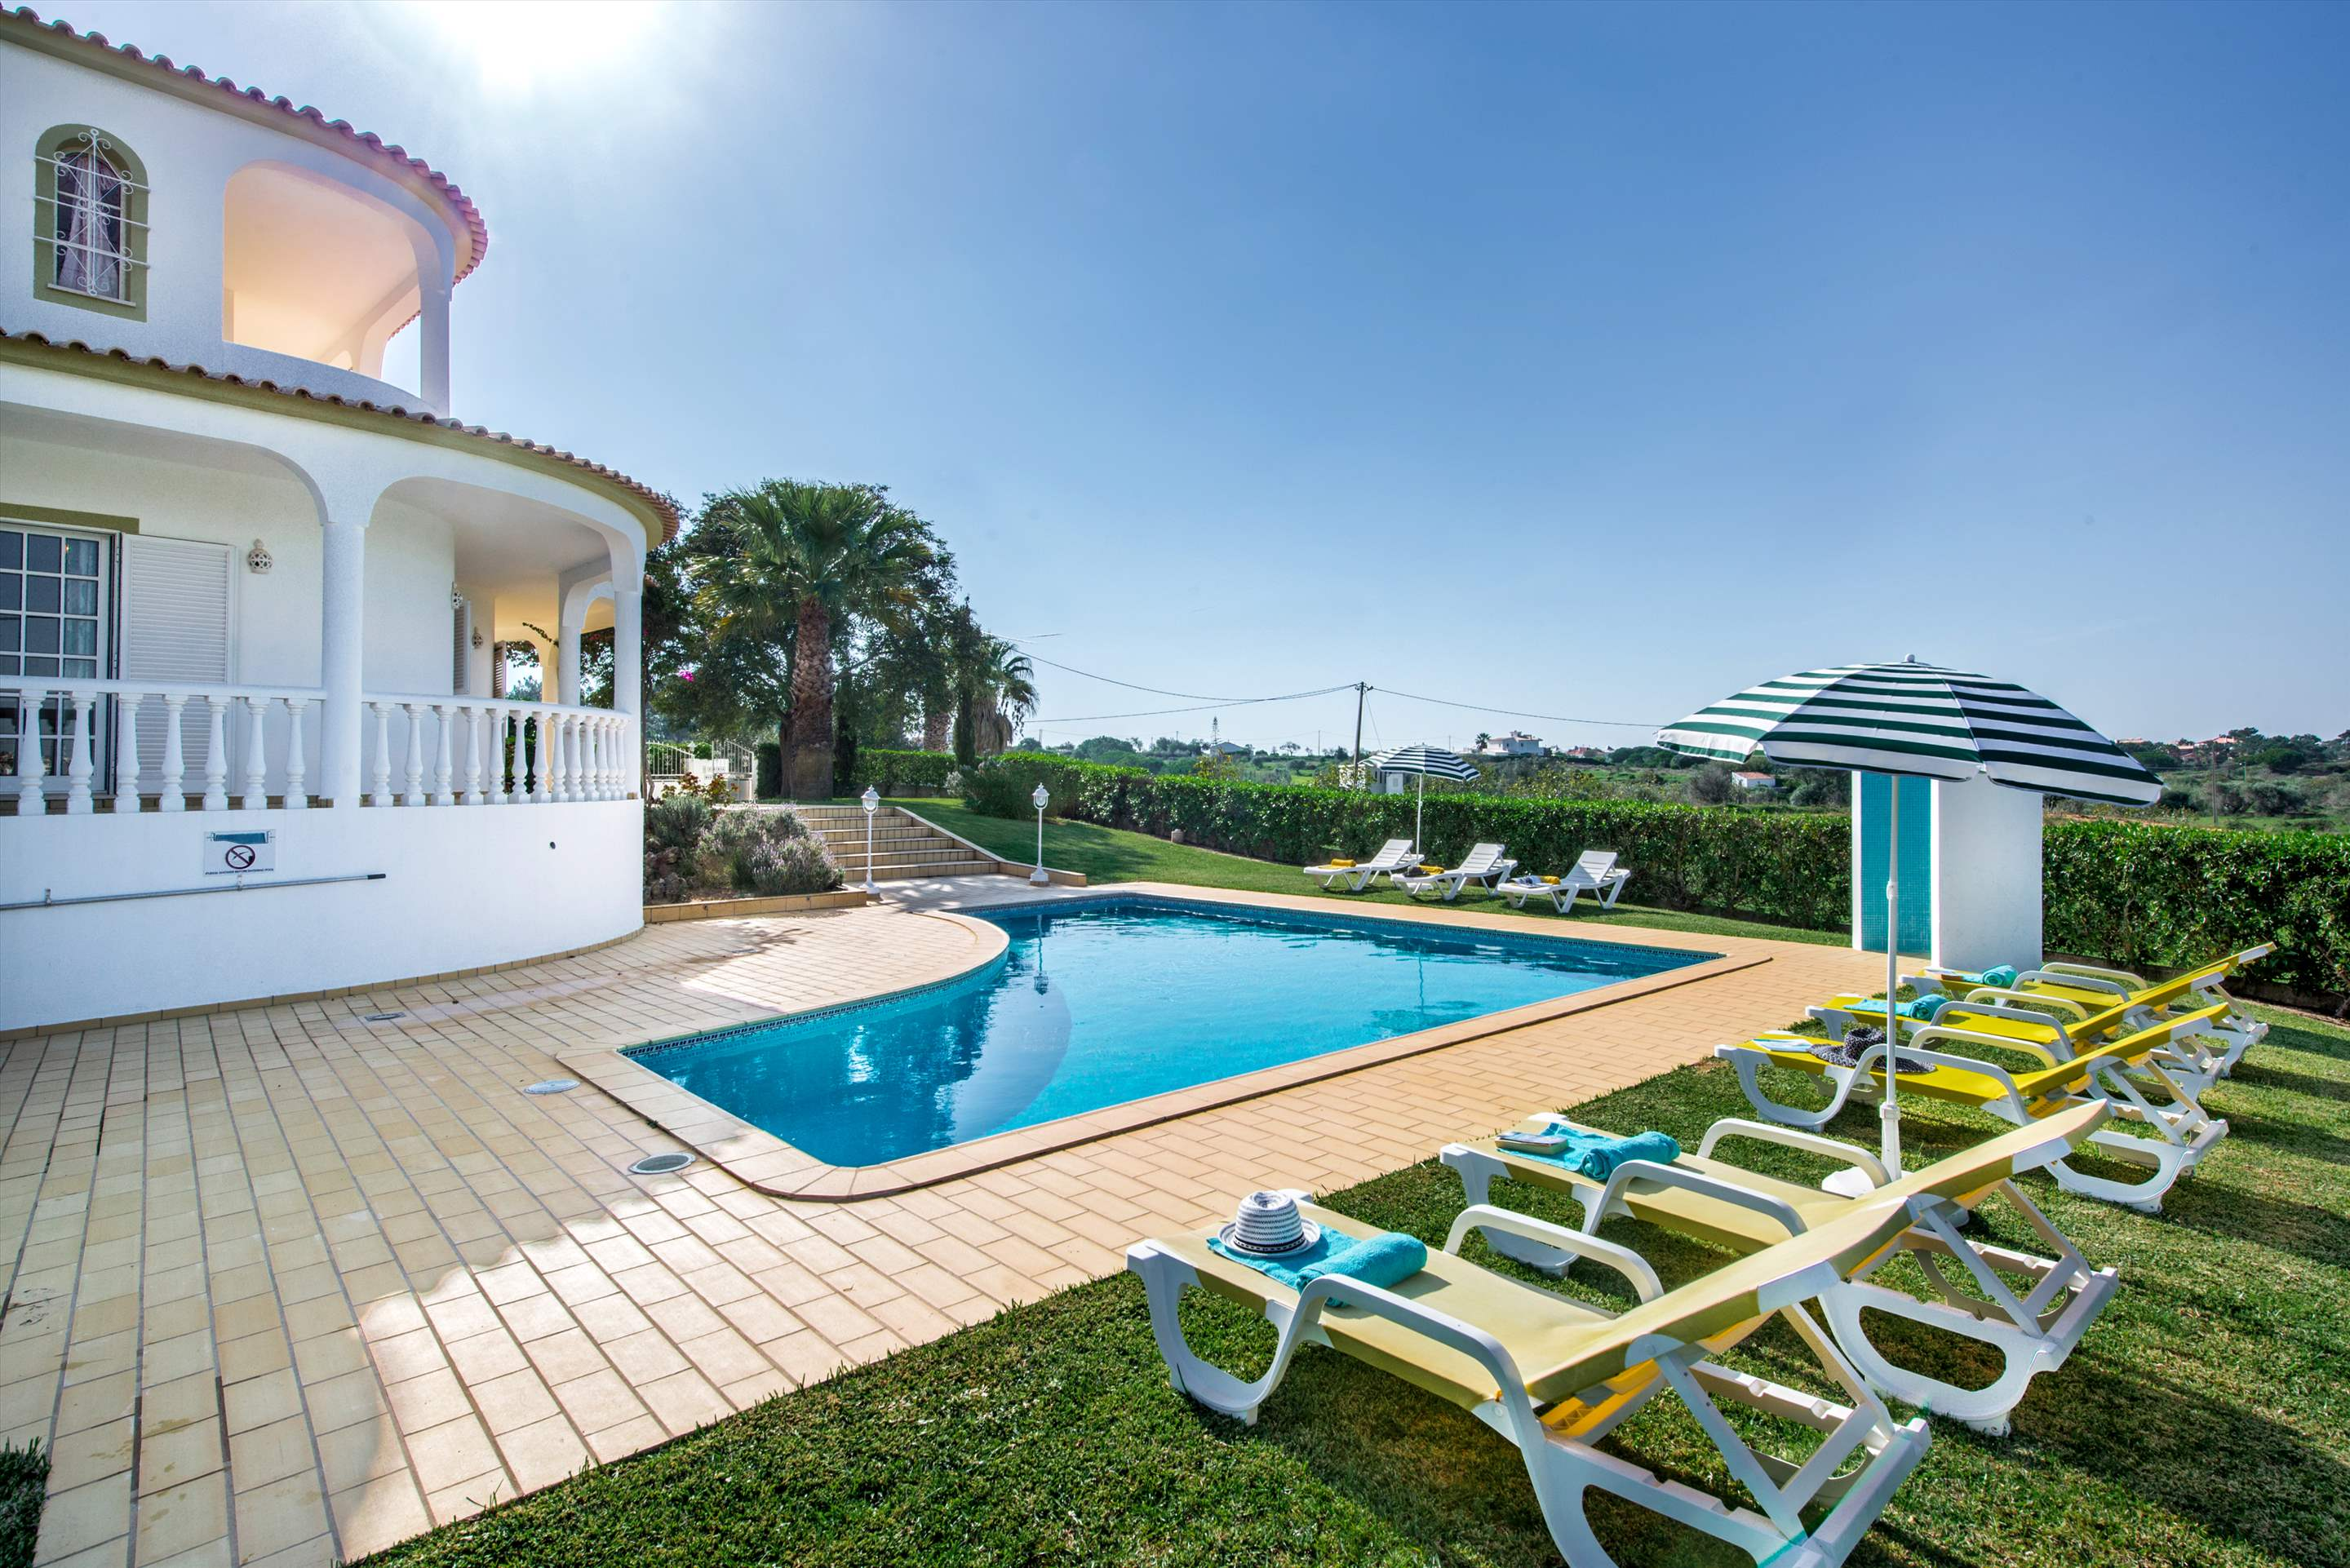 Villa Marco Real, 7-8 persons rate, 4 bedroom villa in Gale, Vale da Parra and Guia, Algarve Photo #8